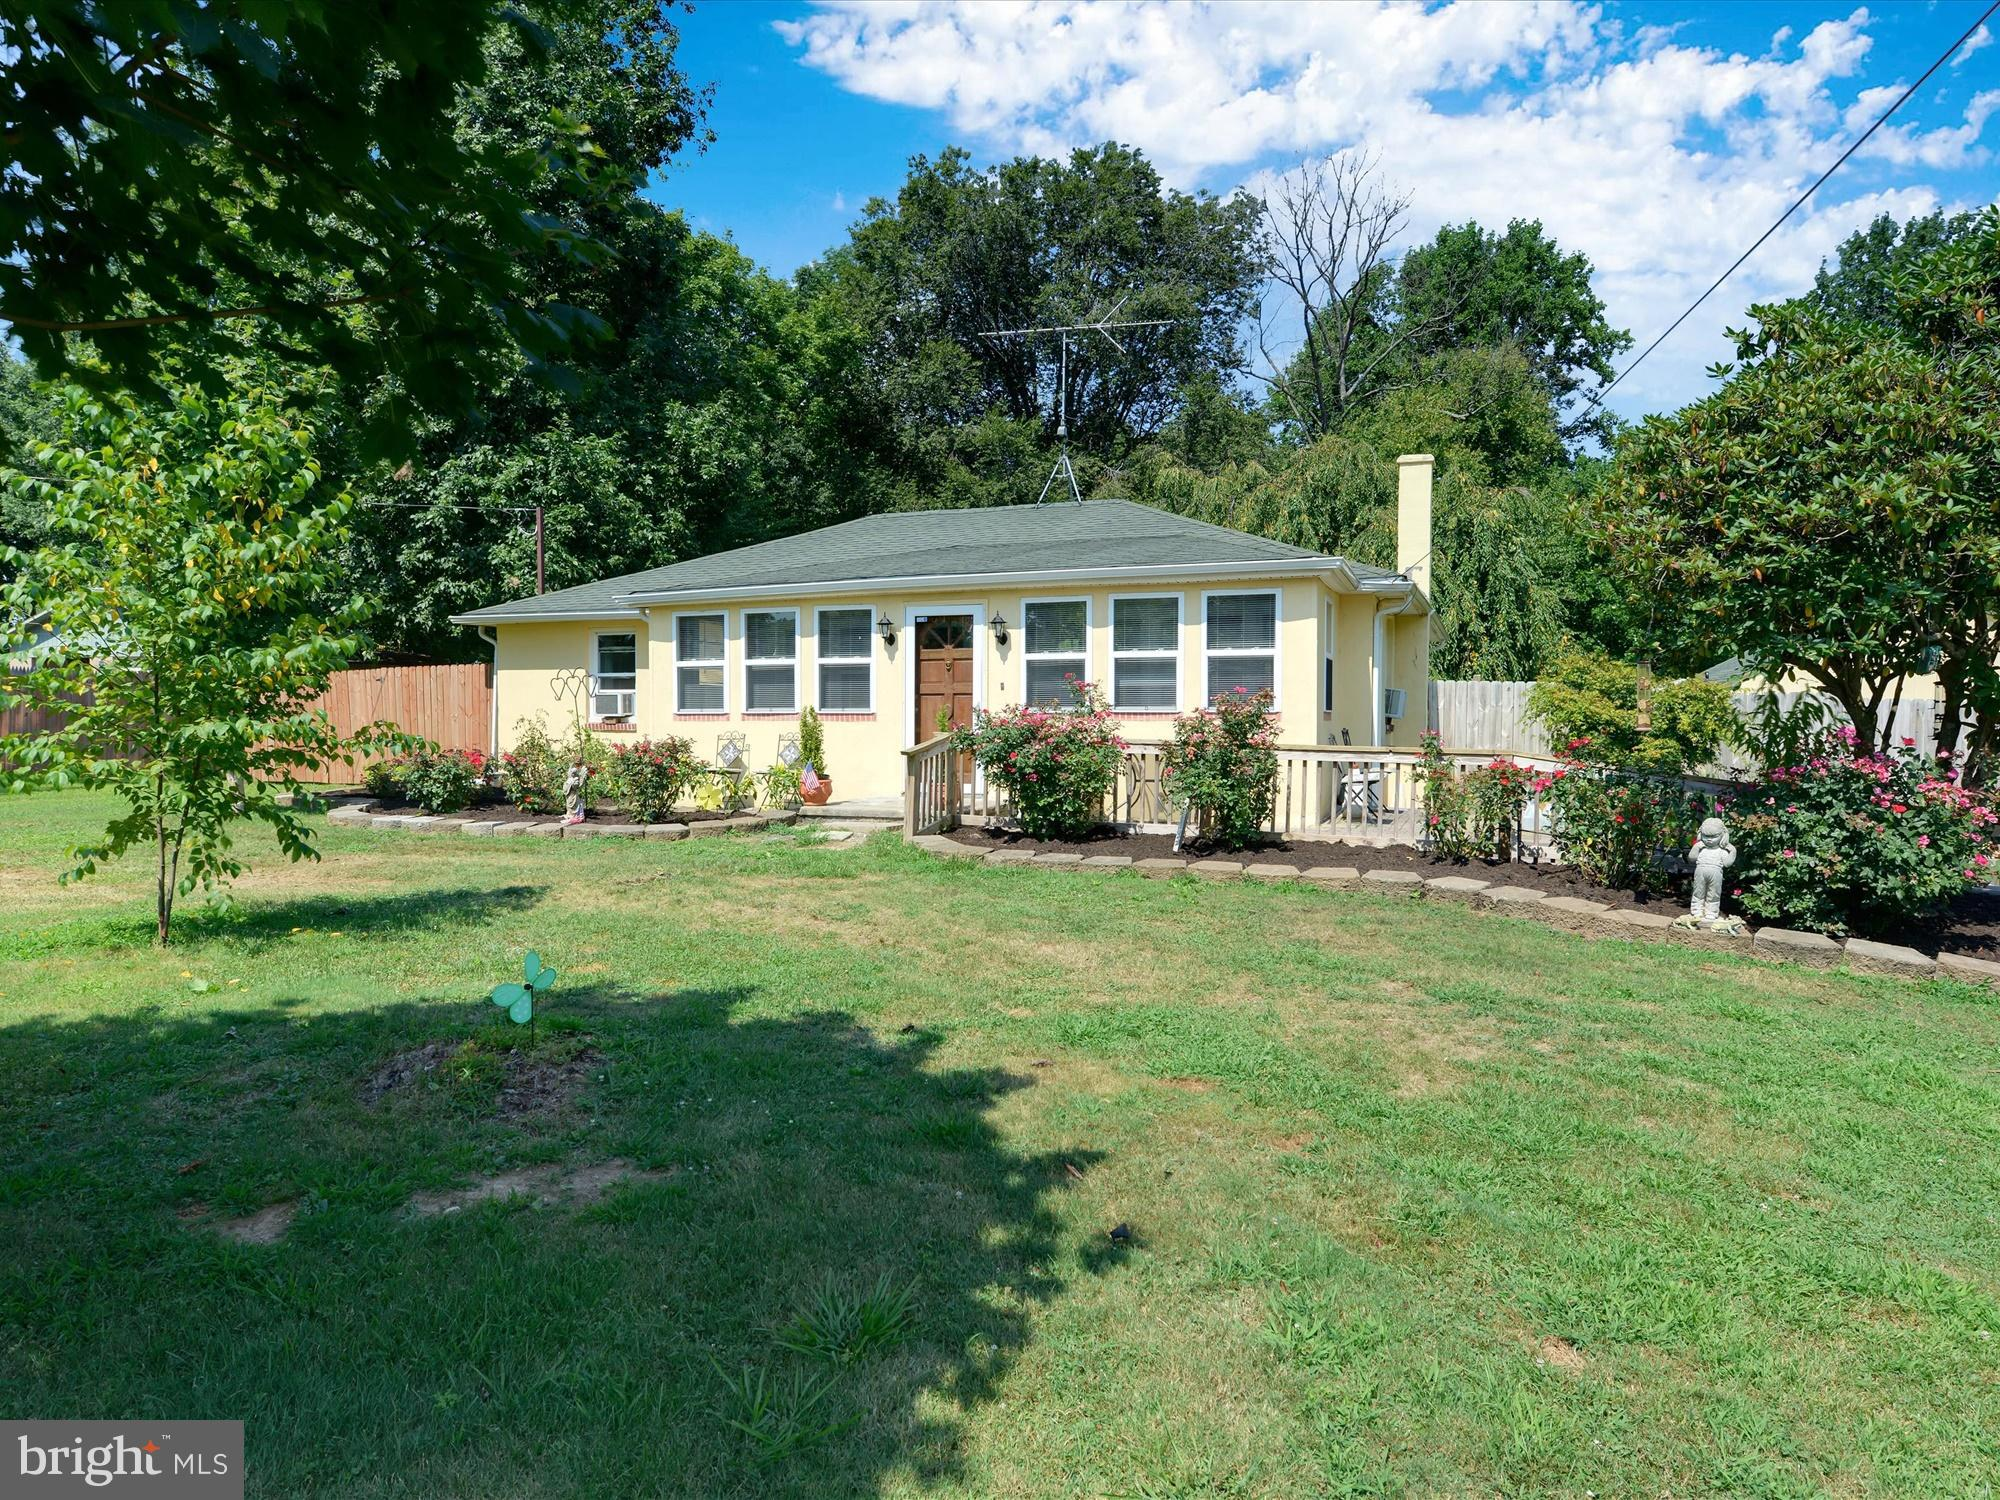 128 PILOTTOWN ROAD, PEACH BOTTOM, PA 17563